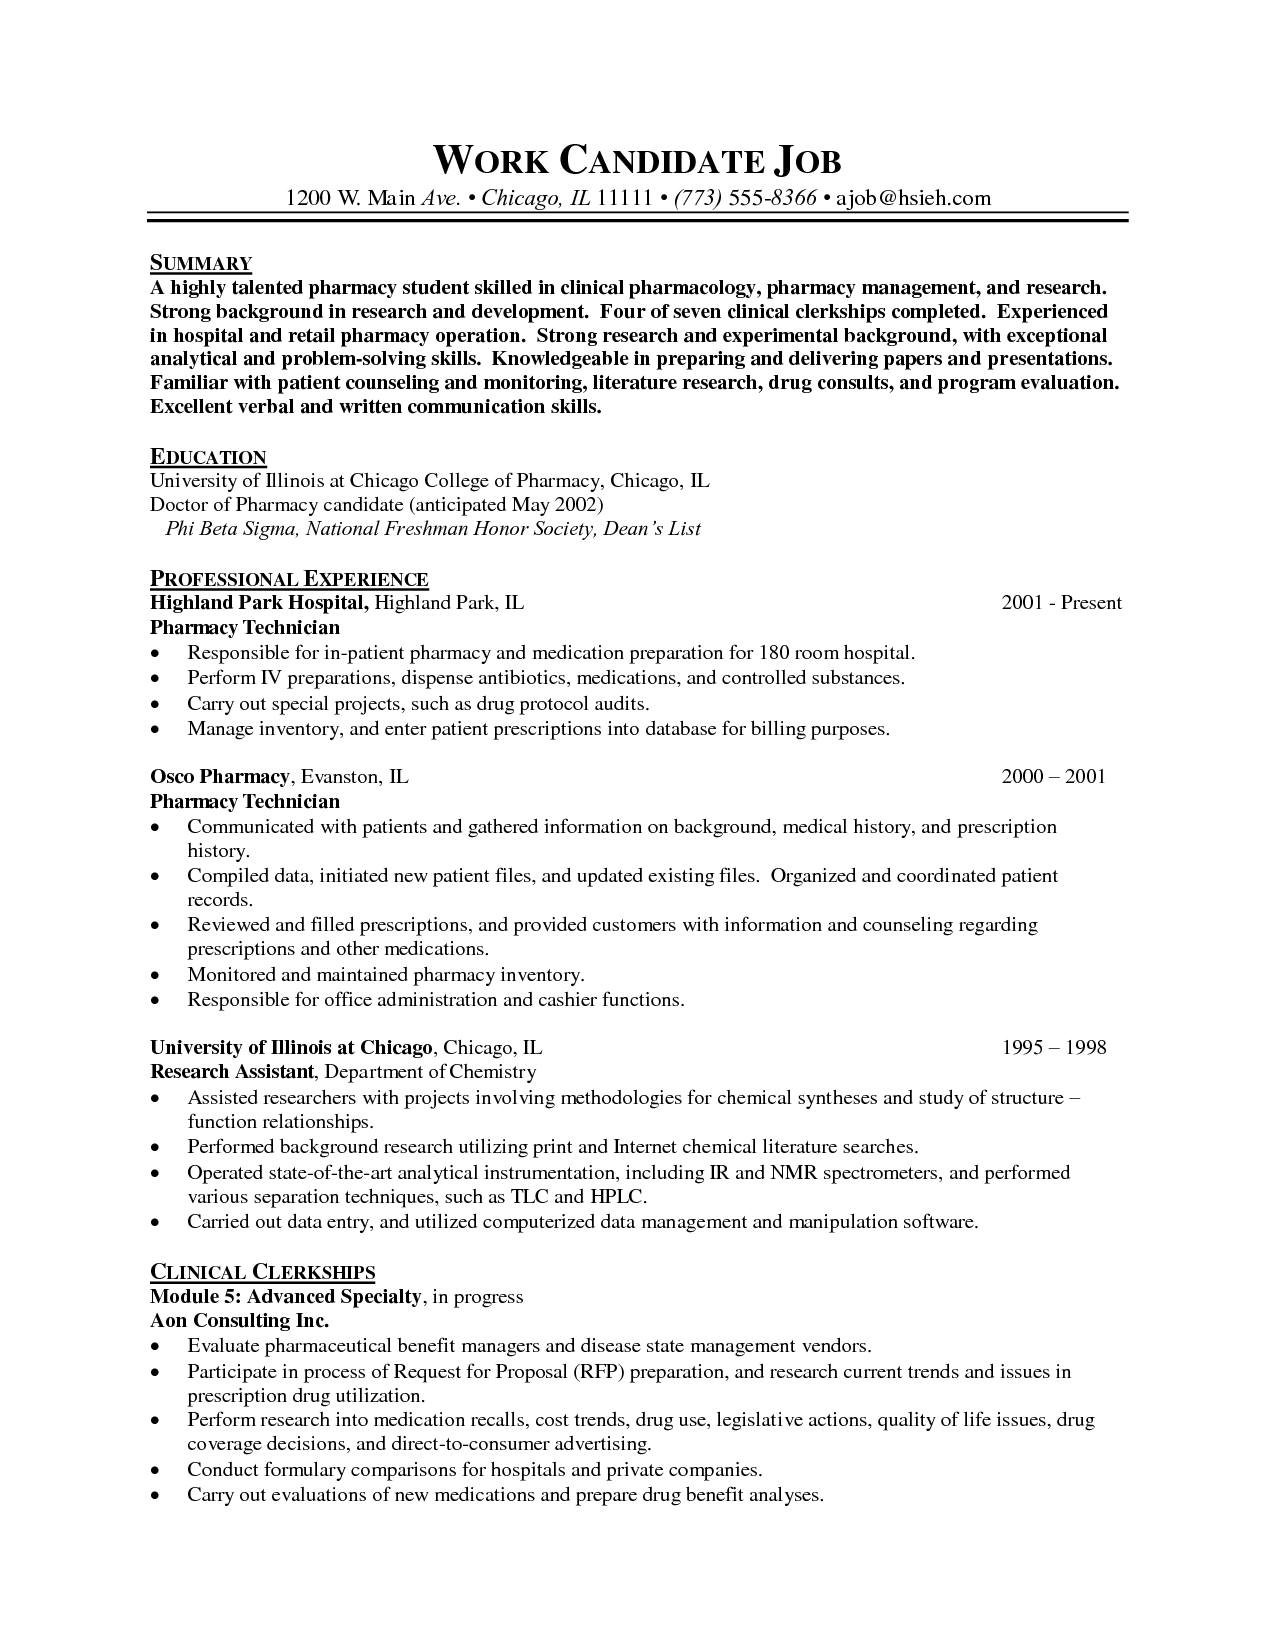 Lovely Professional Resume Cover Letter Sample | Get Instant, Risk Free, Access To  The Full  Pharmacy School Resume